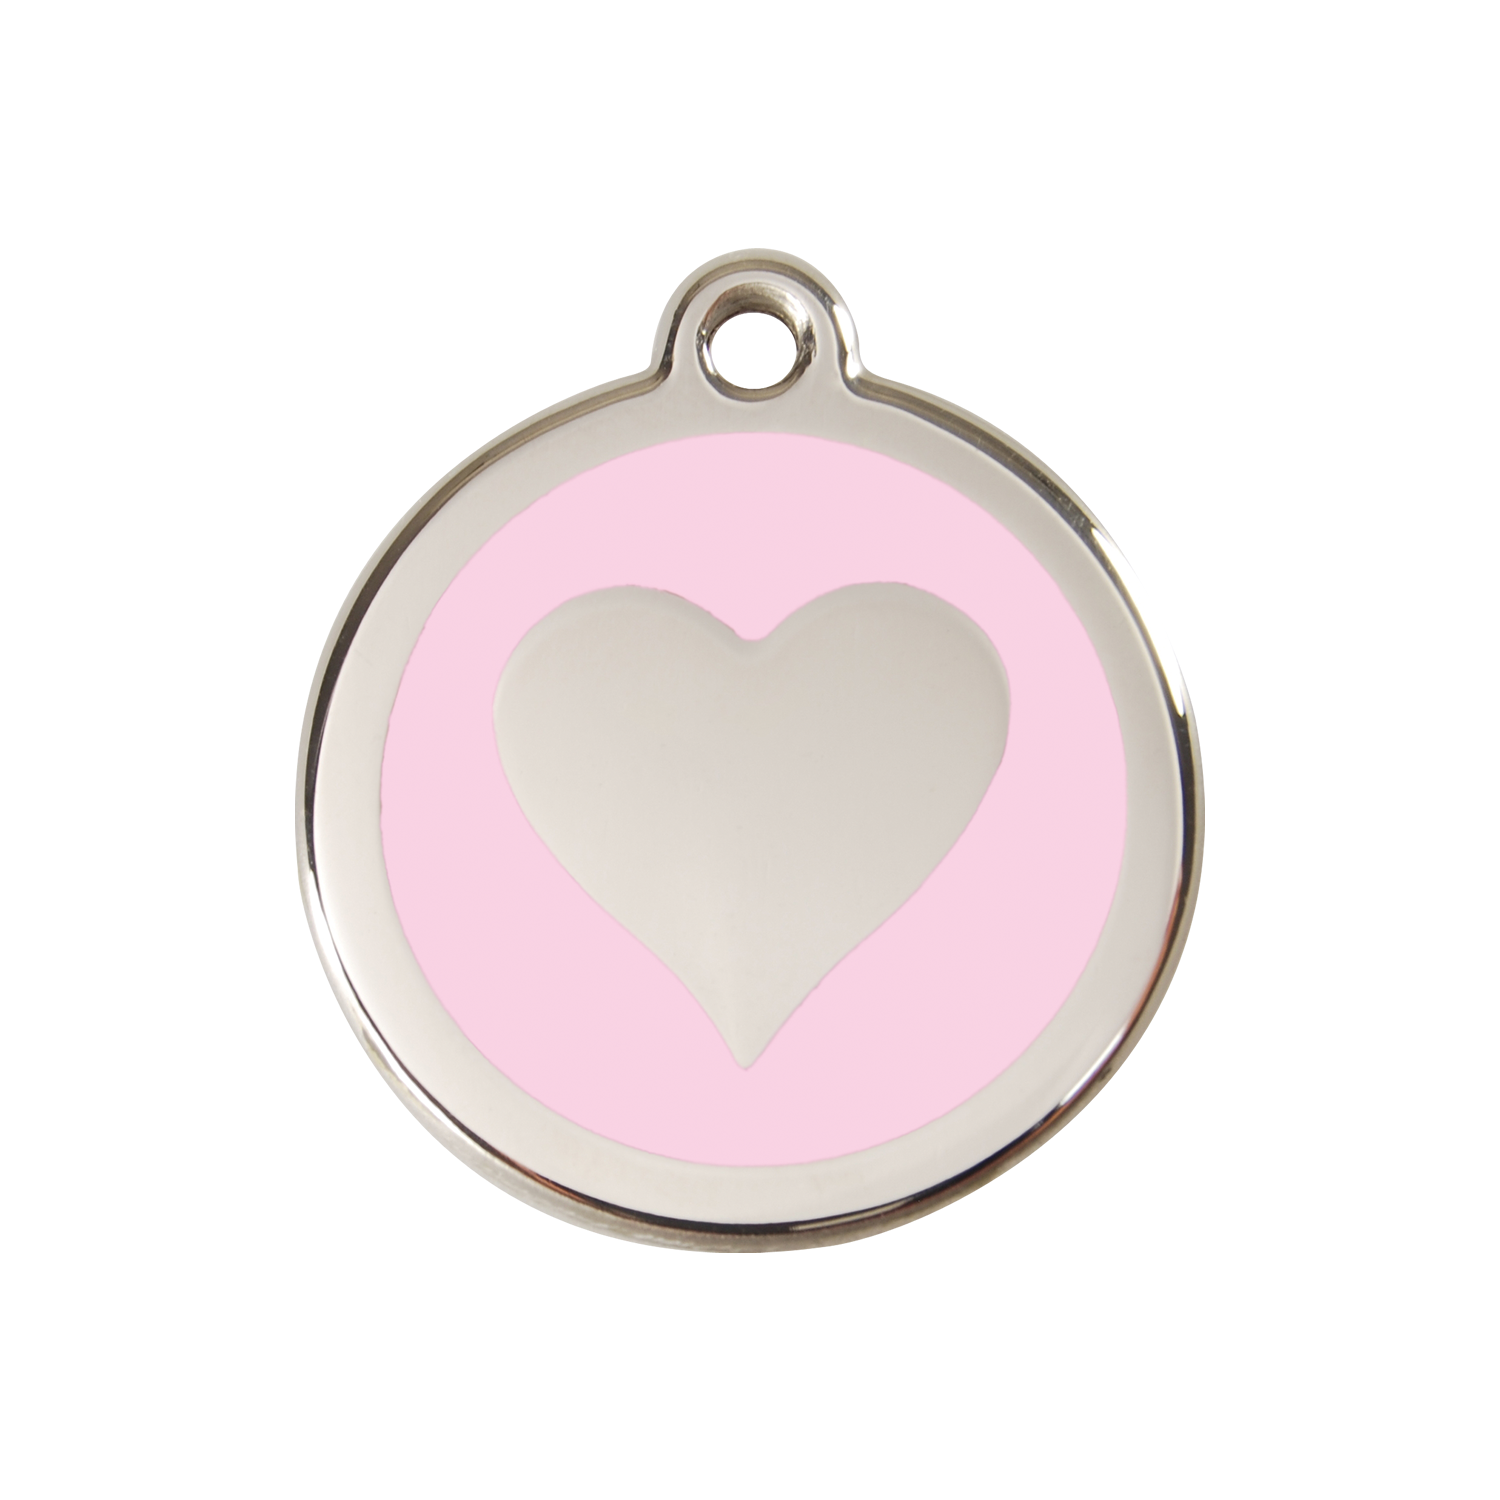 Pink Heart Medium Enamel & Stainless Steel Tag>